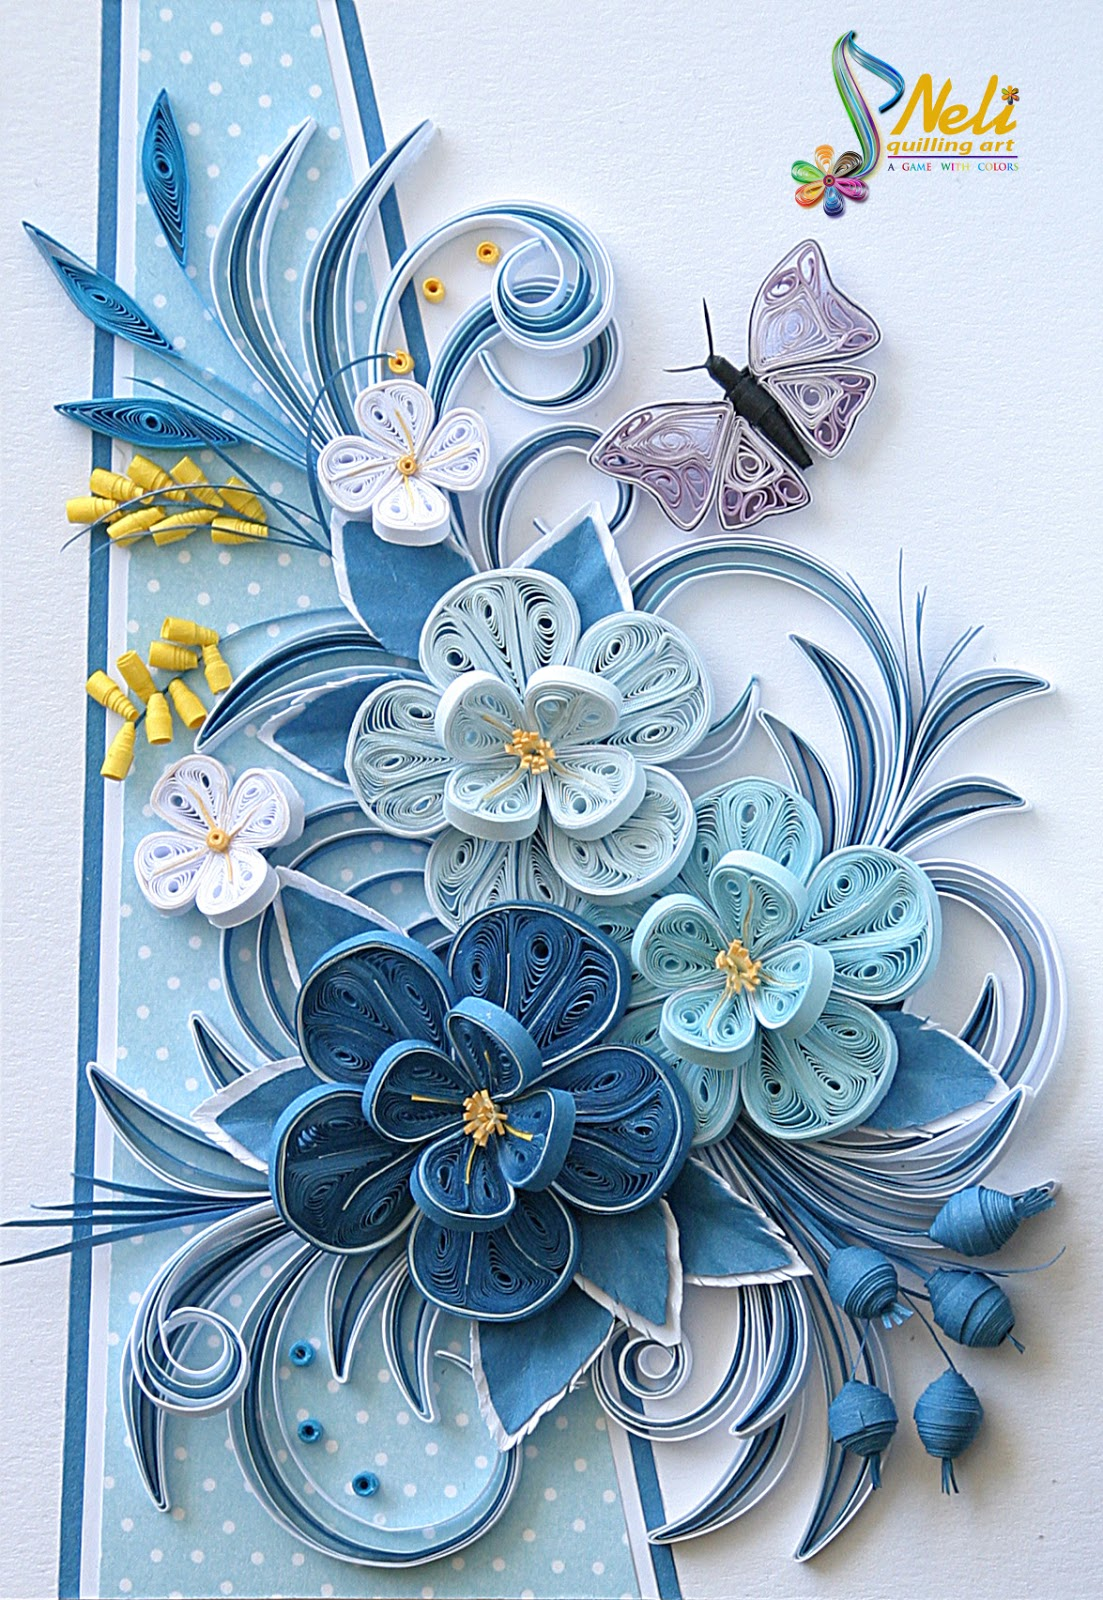 Neli quilling art quilling cards for Art and craft drawing and painting